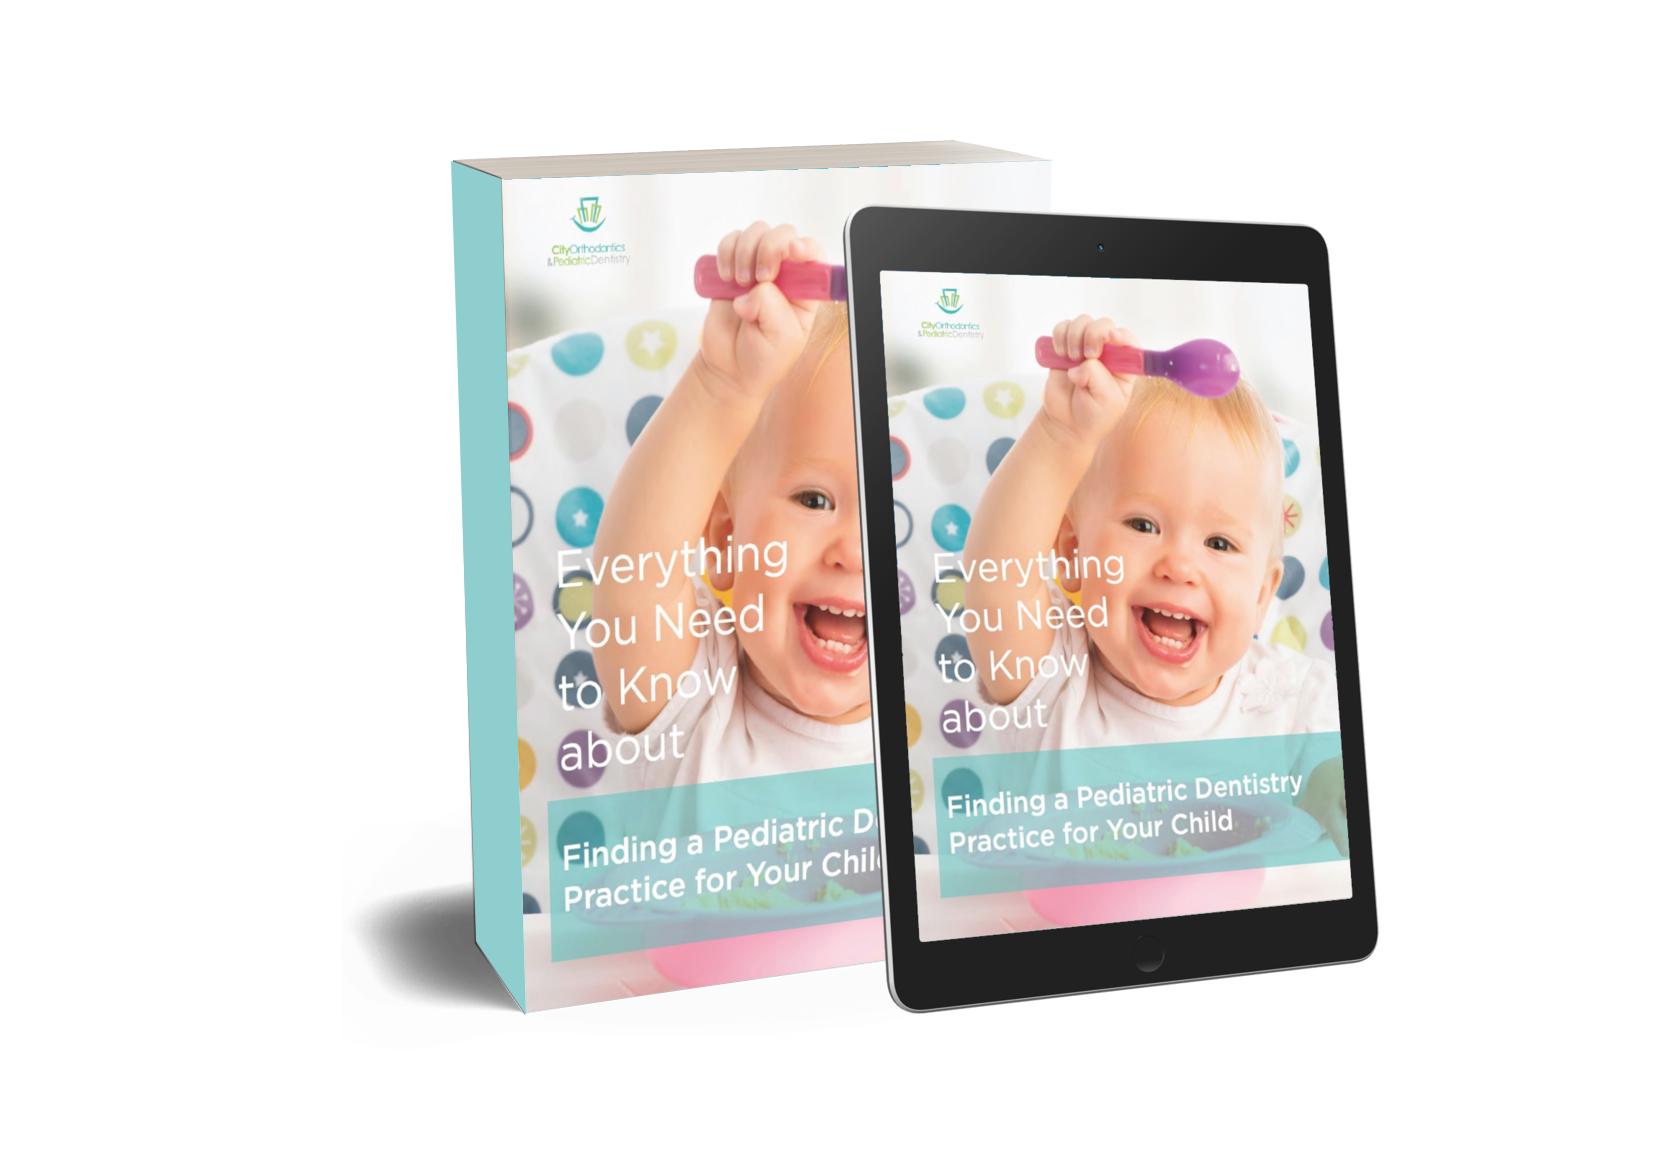 [Cover] Everything_You_Need_to_Know_about_Finding_a_Pediatric_Dentistry_Practice_for_Your_Child